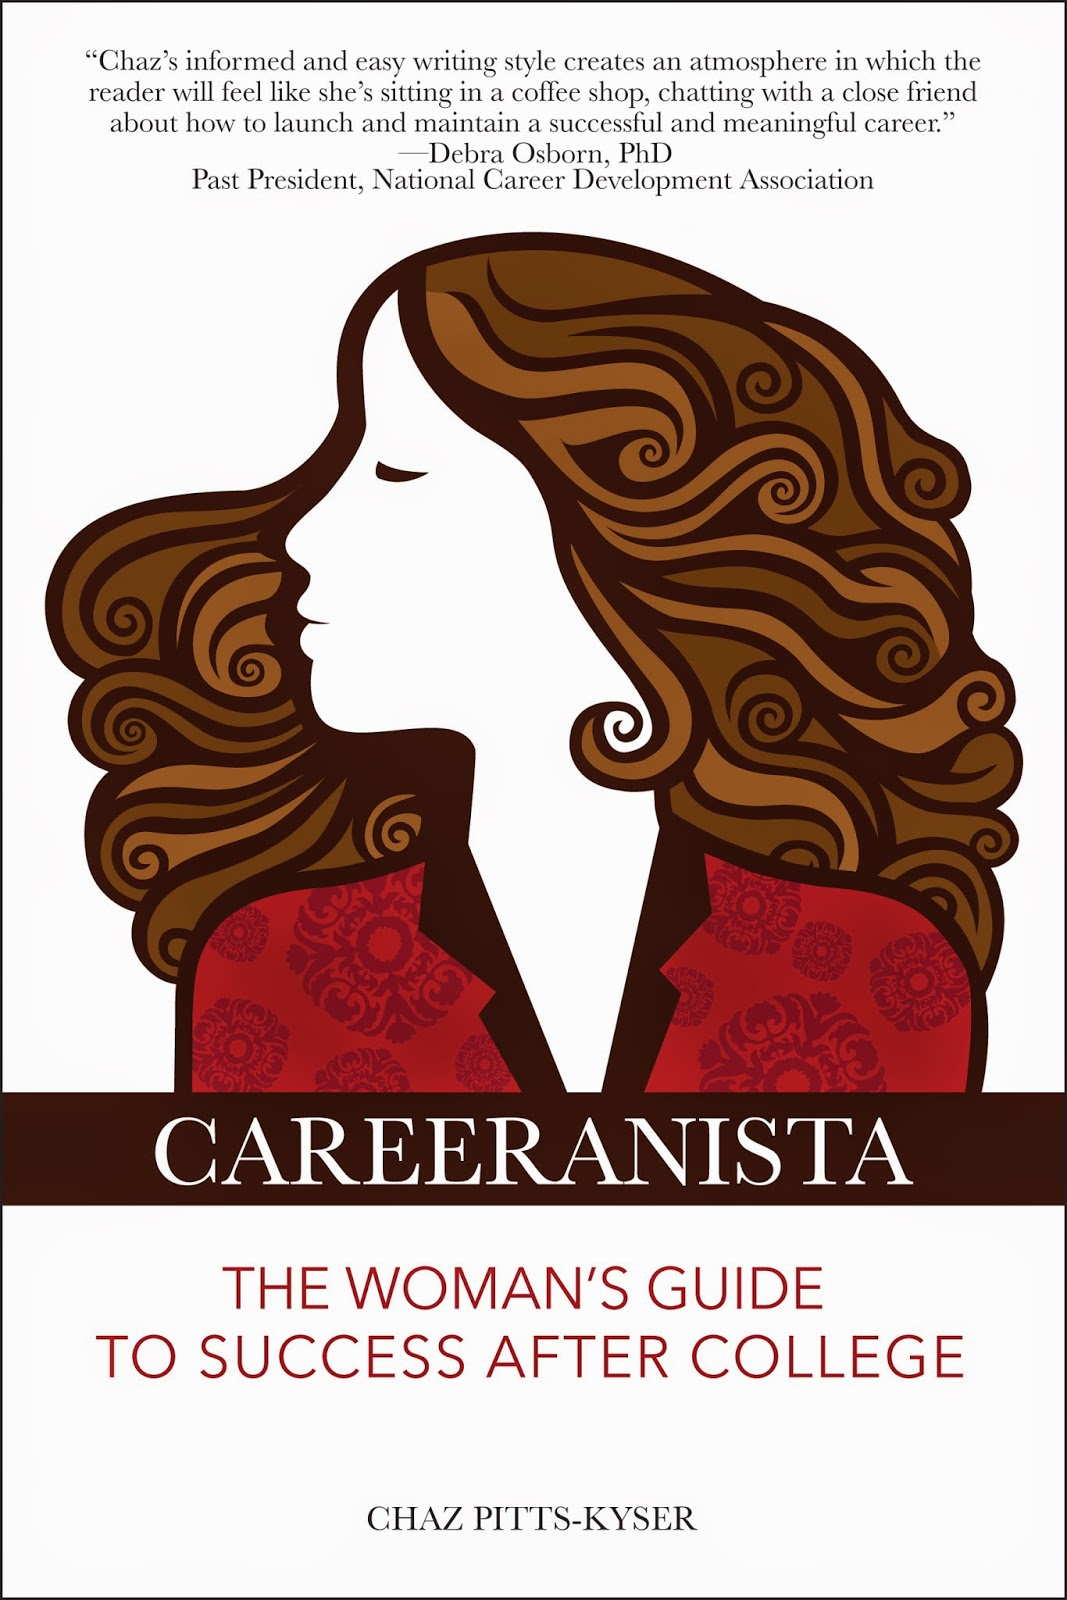 Careeranista by Chaz Pitts-Kyser {Book Review}